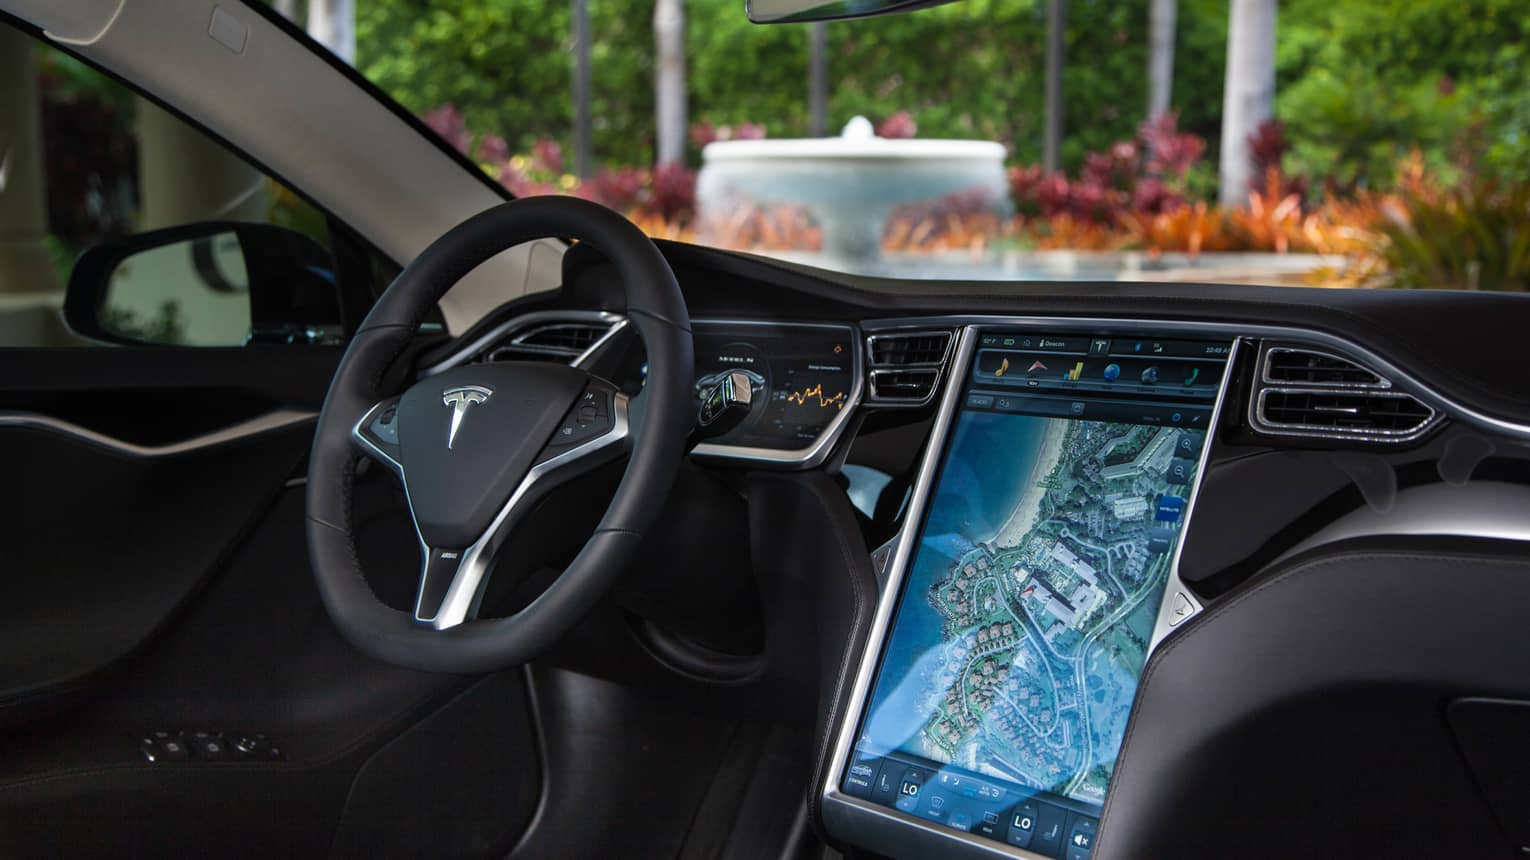 Close-up of Tesla car wheel, dashboard with touchscreen